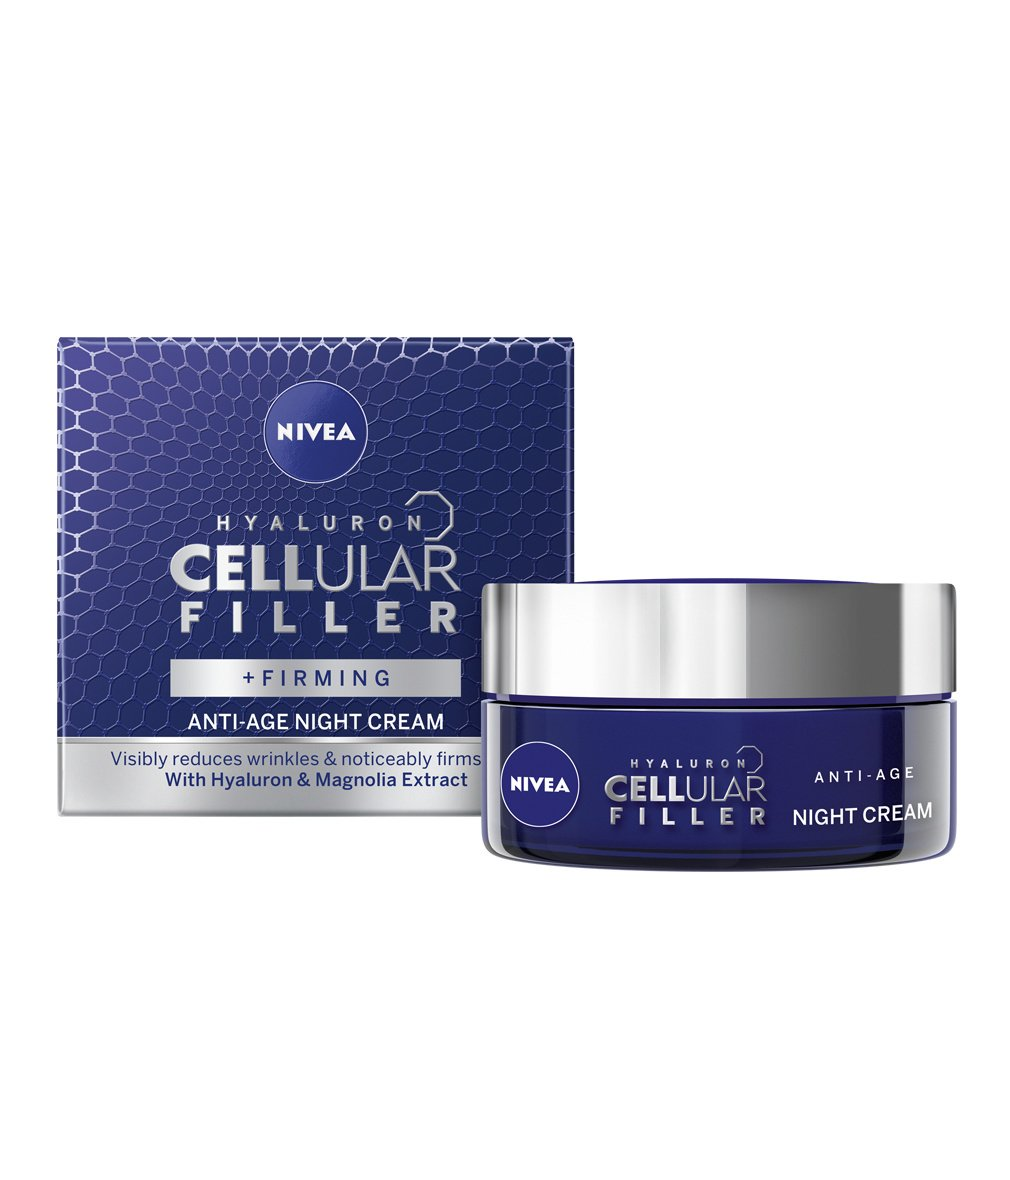 Nivea Cellular Anti-Age Night Cream - 50ml